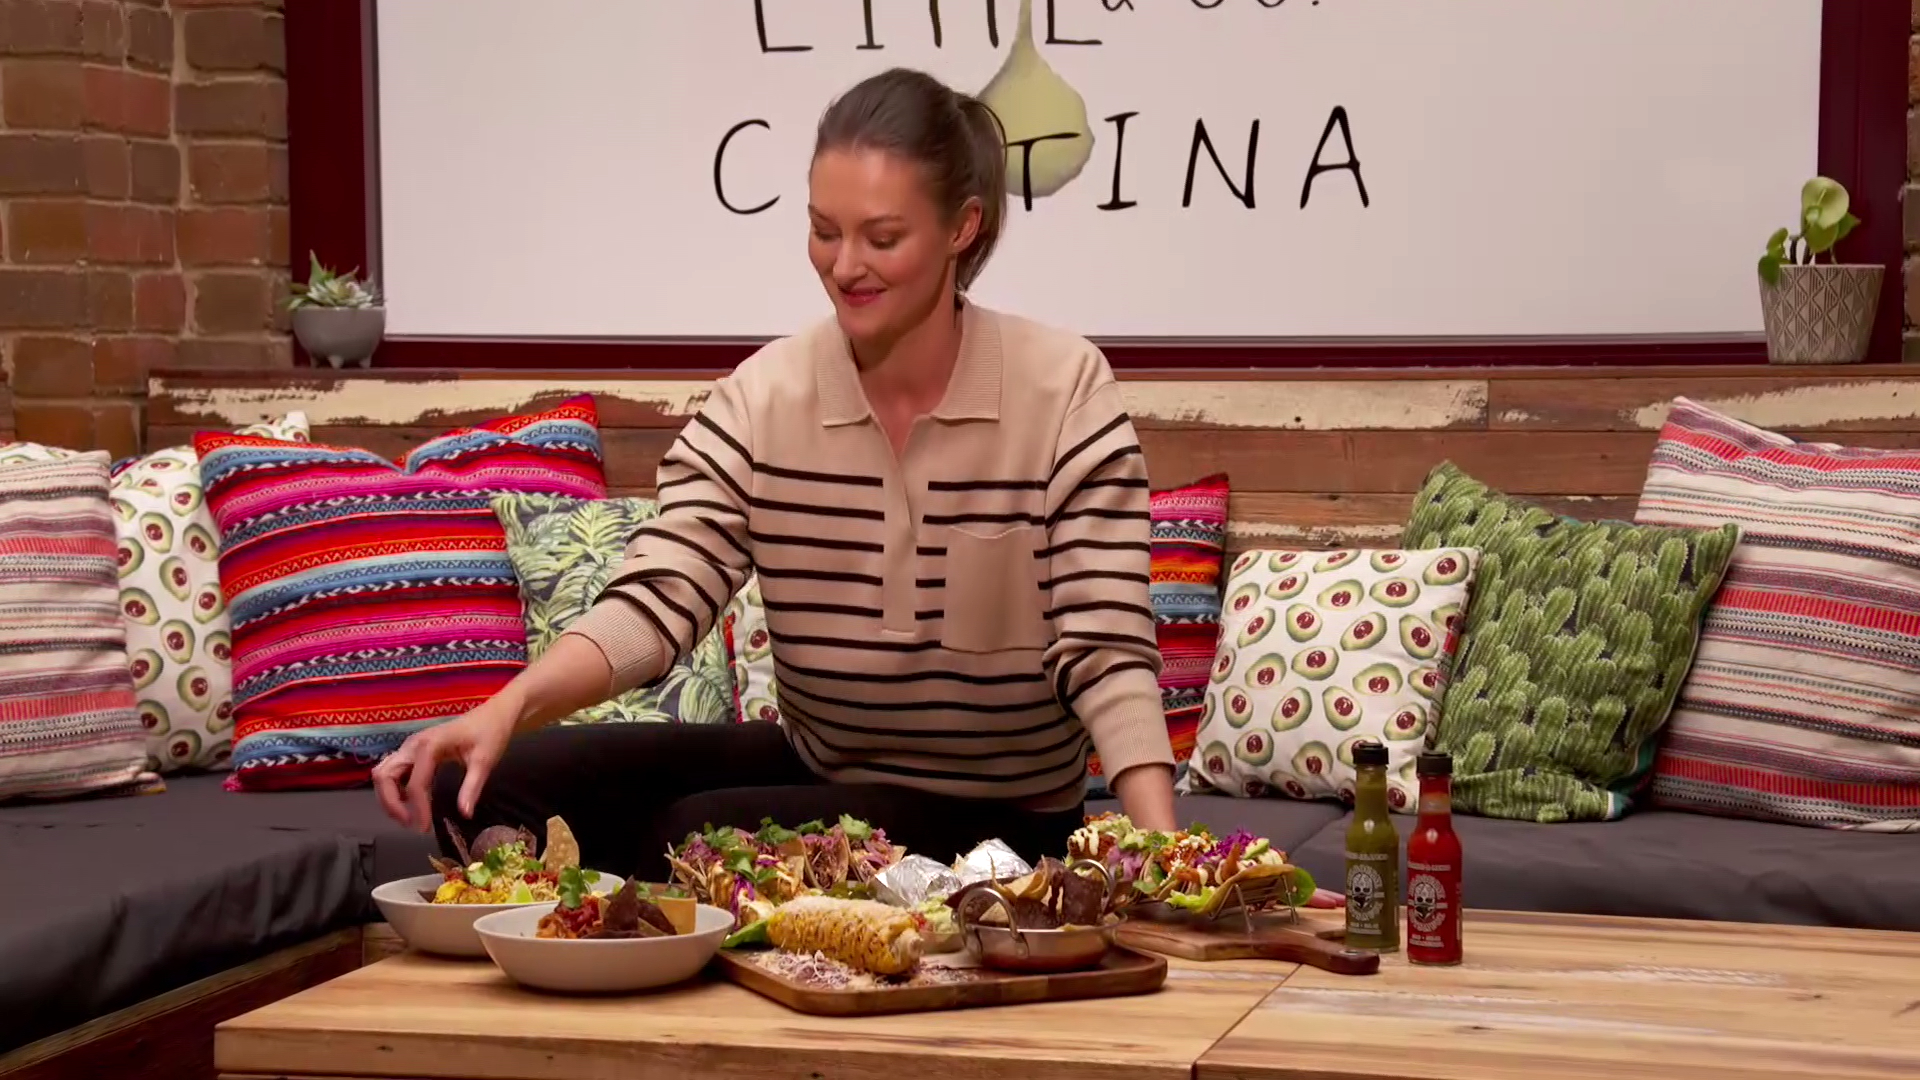 Madeline indulges in a Mexican feast in Inverloch